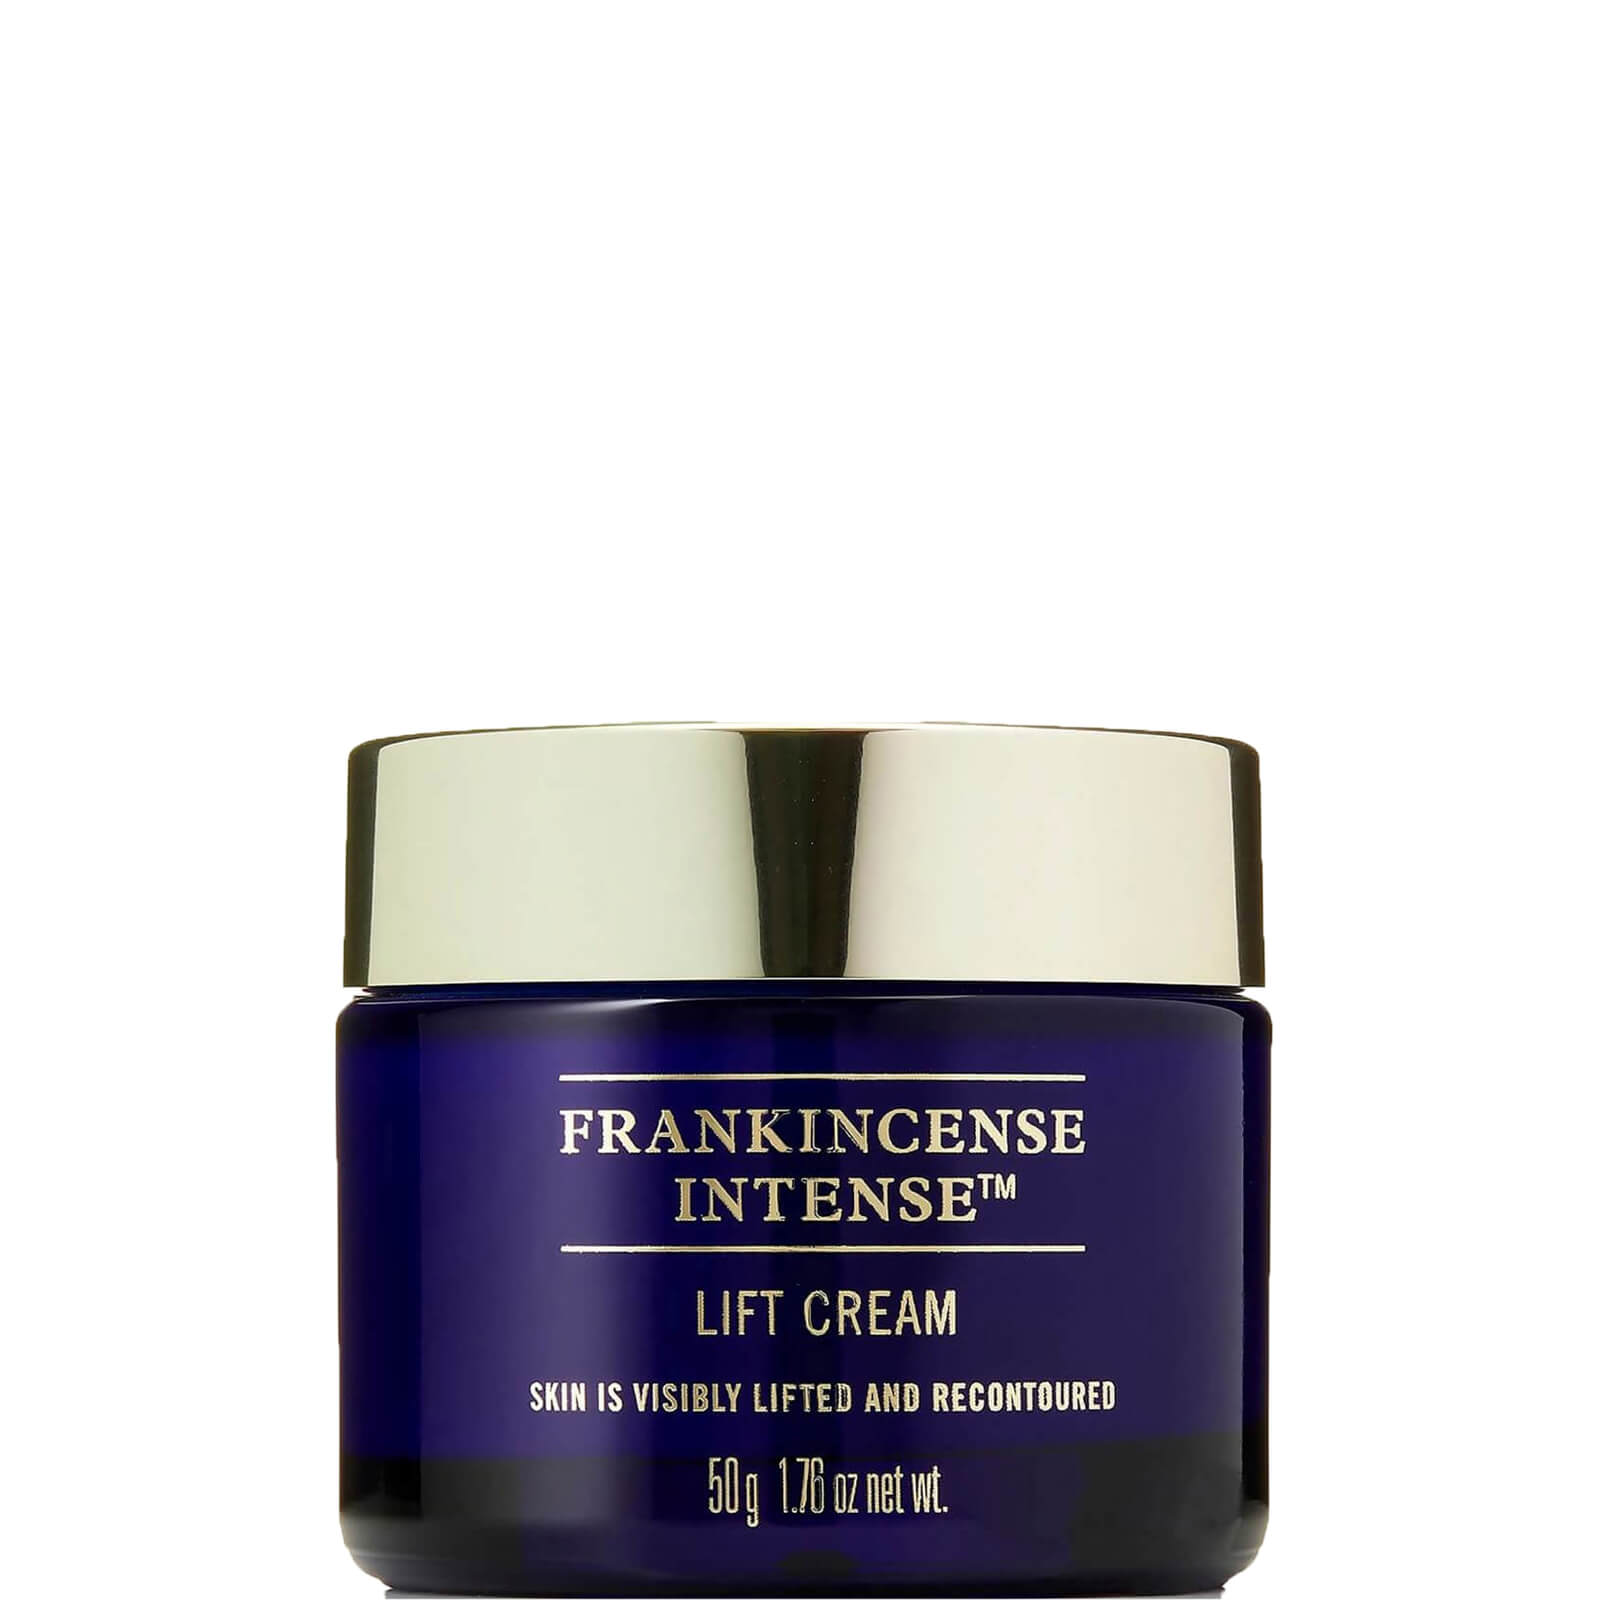 Neal's Yard Remedies Frankincense Intense™ Lift Cream 50g